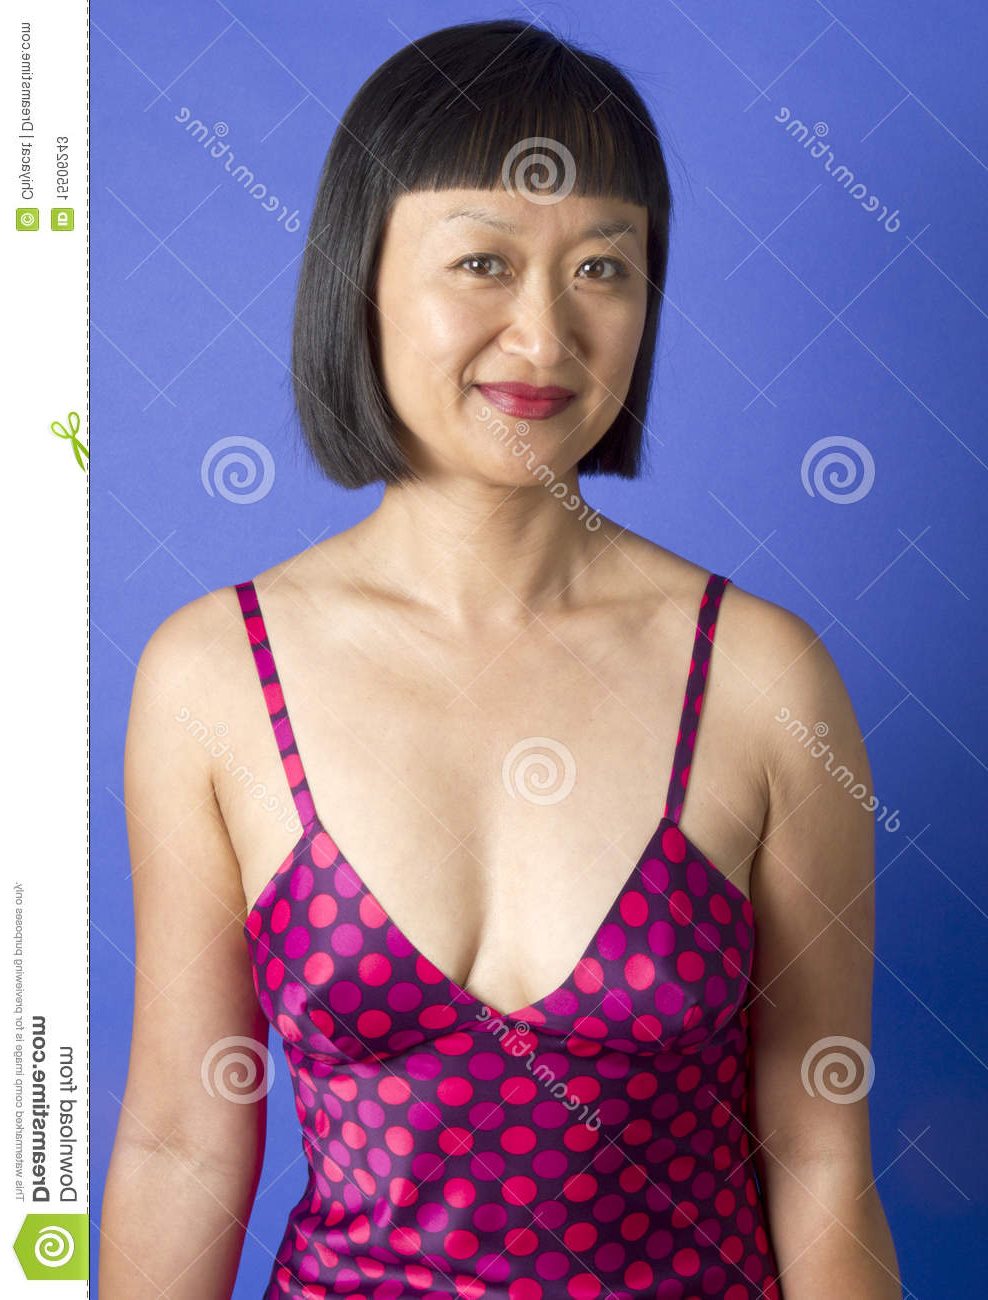 Asian Woman With Short Hair Smiling Stock Image – Image Of With Regard To Short Hairstyle For Asian Girl (View 20 of 25)